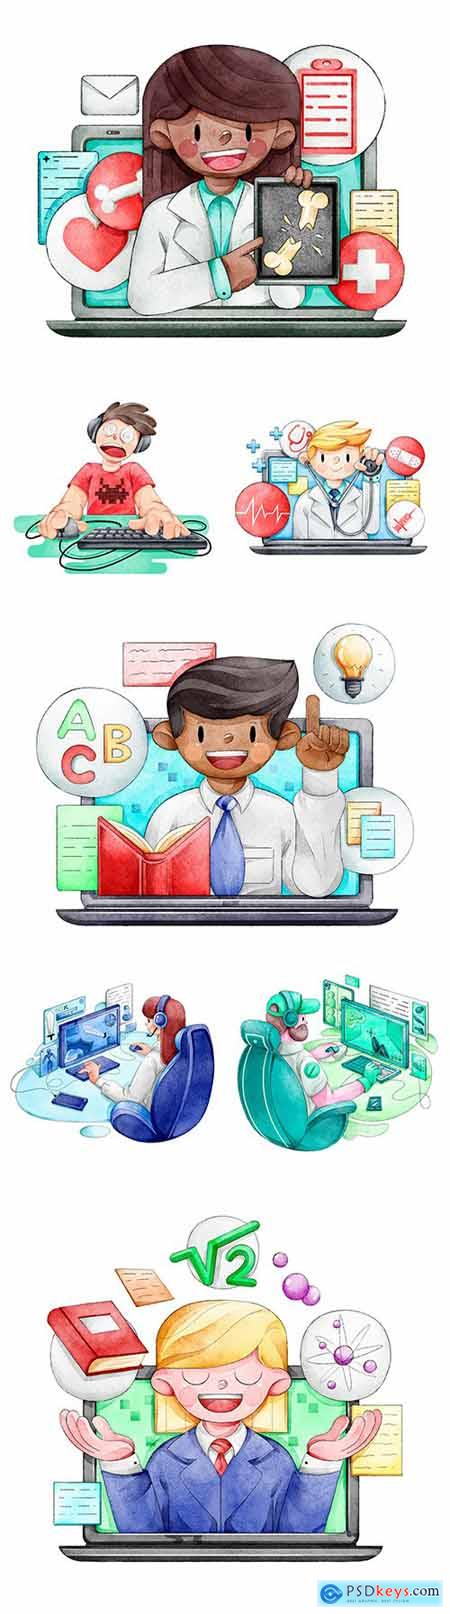 Online courses, video games and internet doctor drawing illustrations